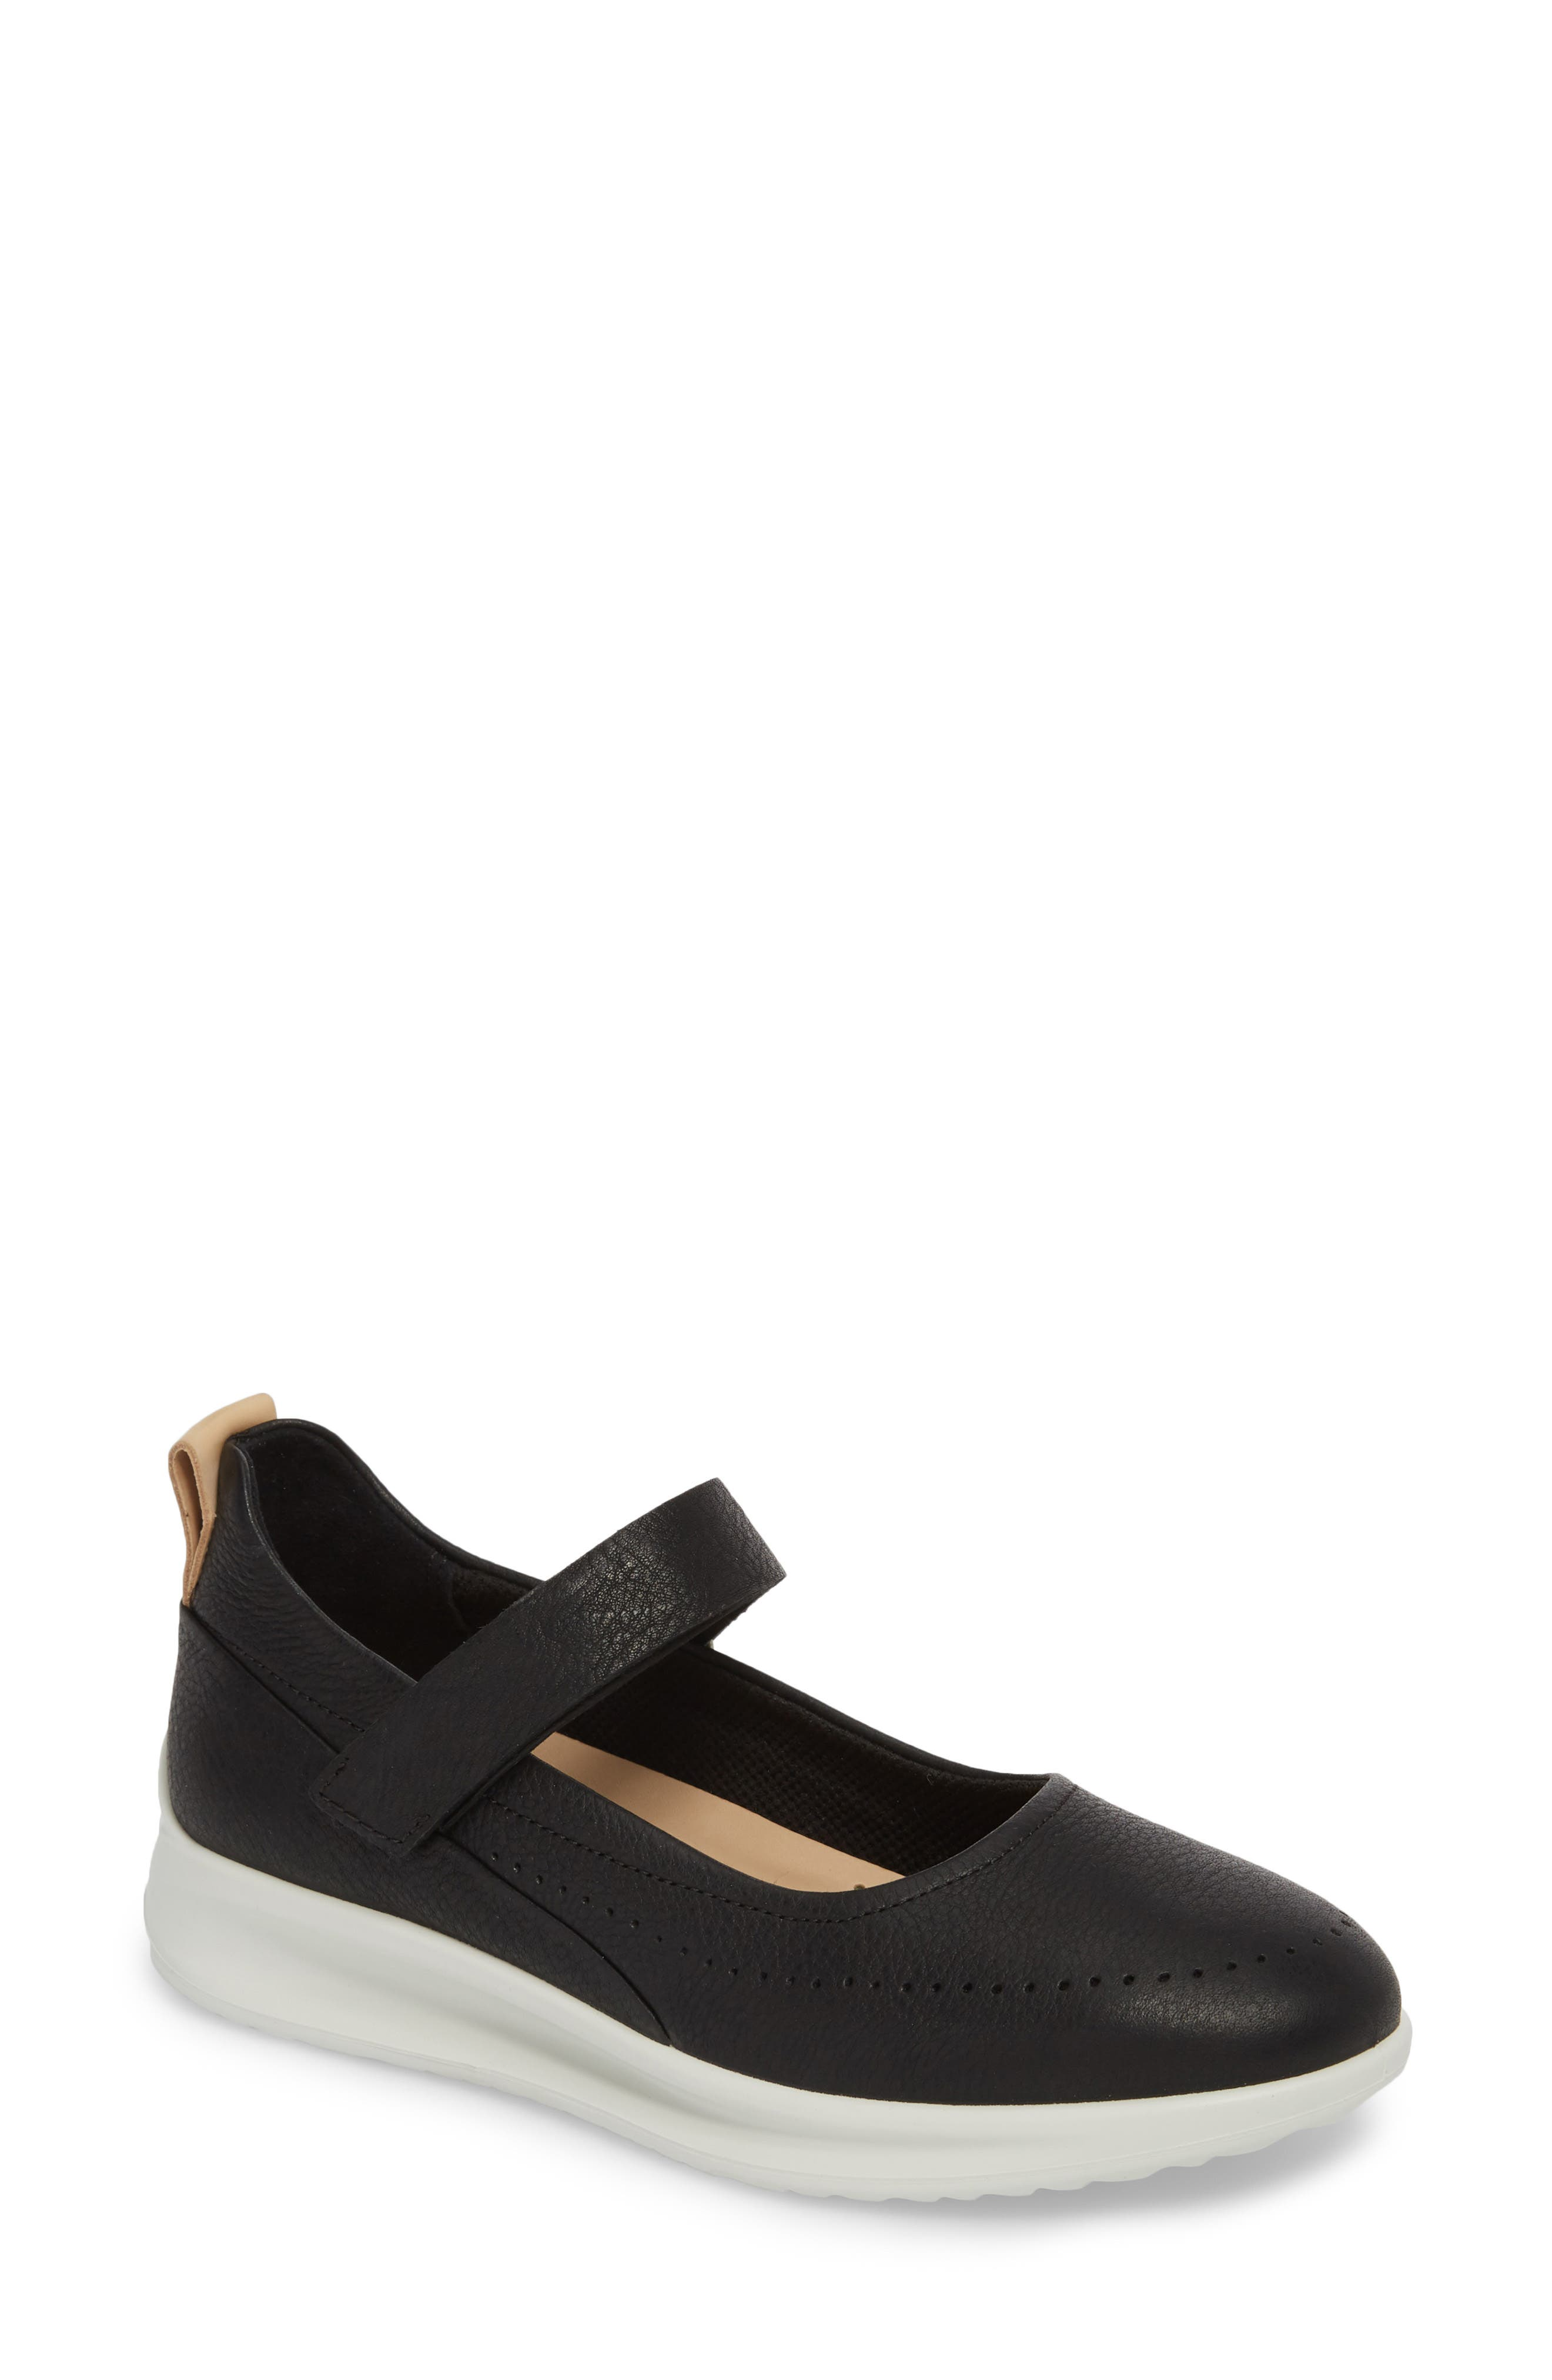 Aquet Mary Jane Wedge Sneaker,                         Main,                         color, Black Leather